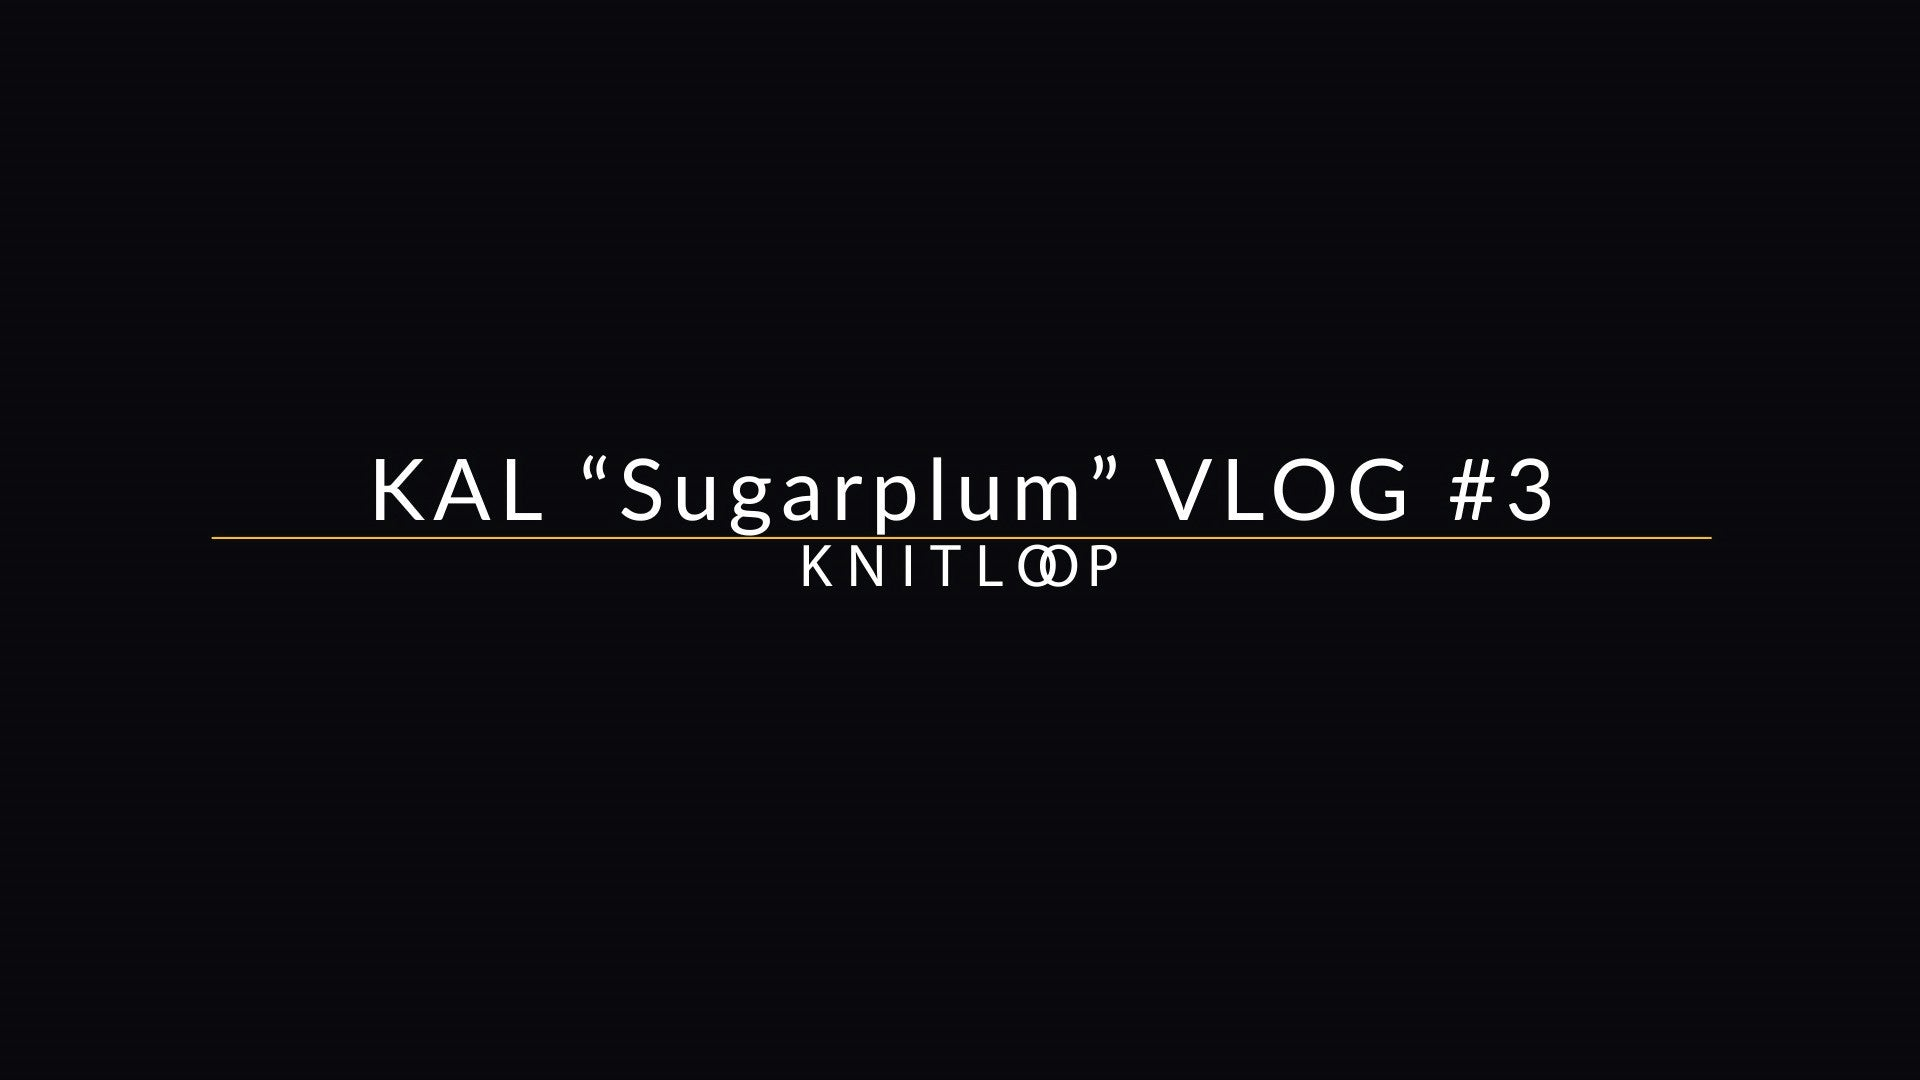 FOLGE 3 - KNIT ALONG 'TOP SUGARPLUM'